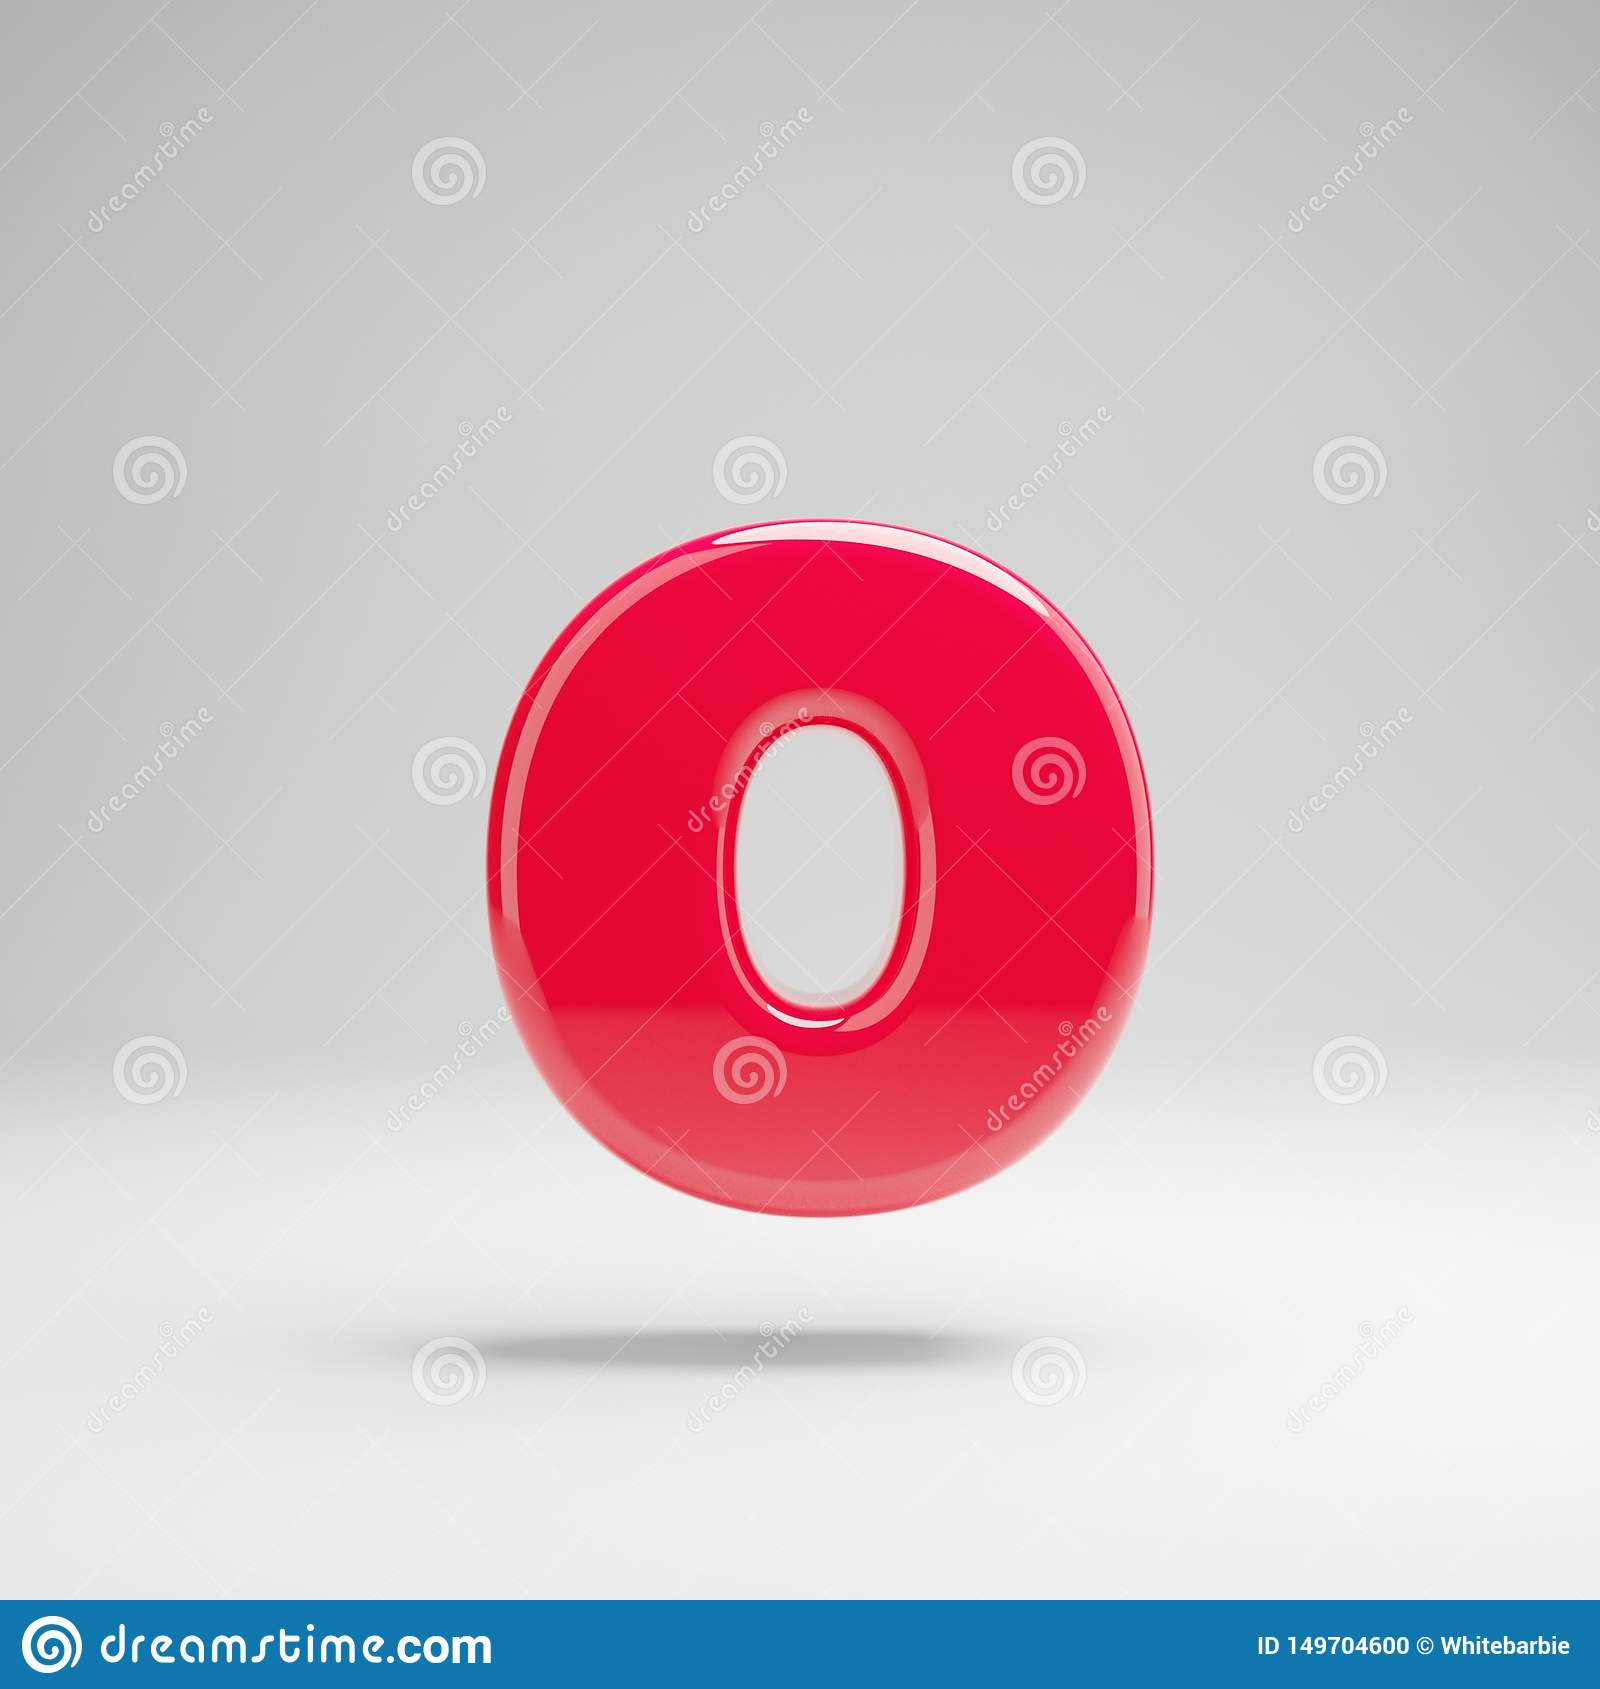 Glossy neon pink lowercase letter O isolated on white background